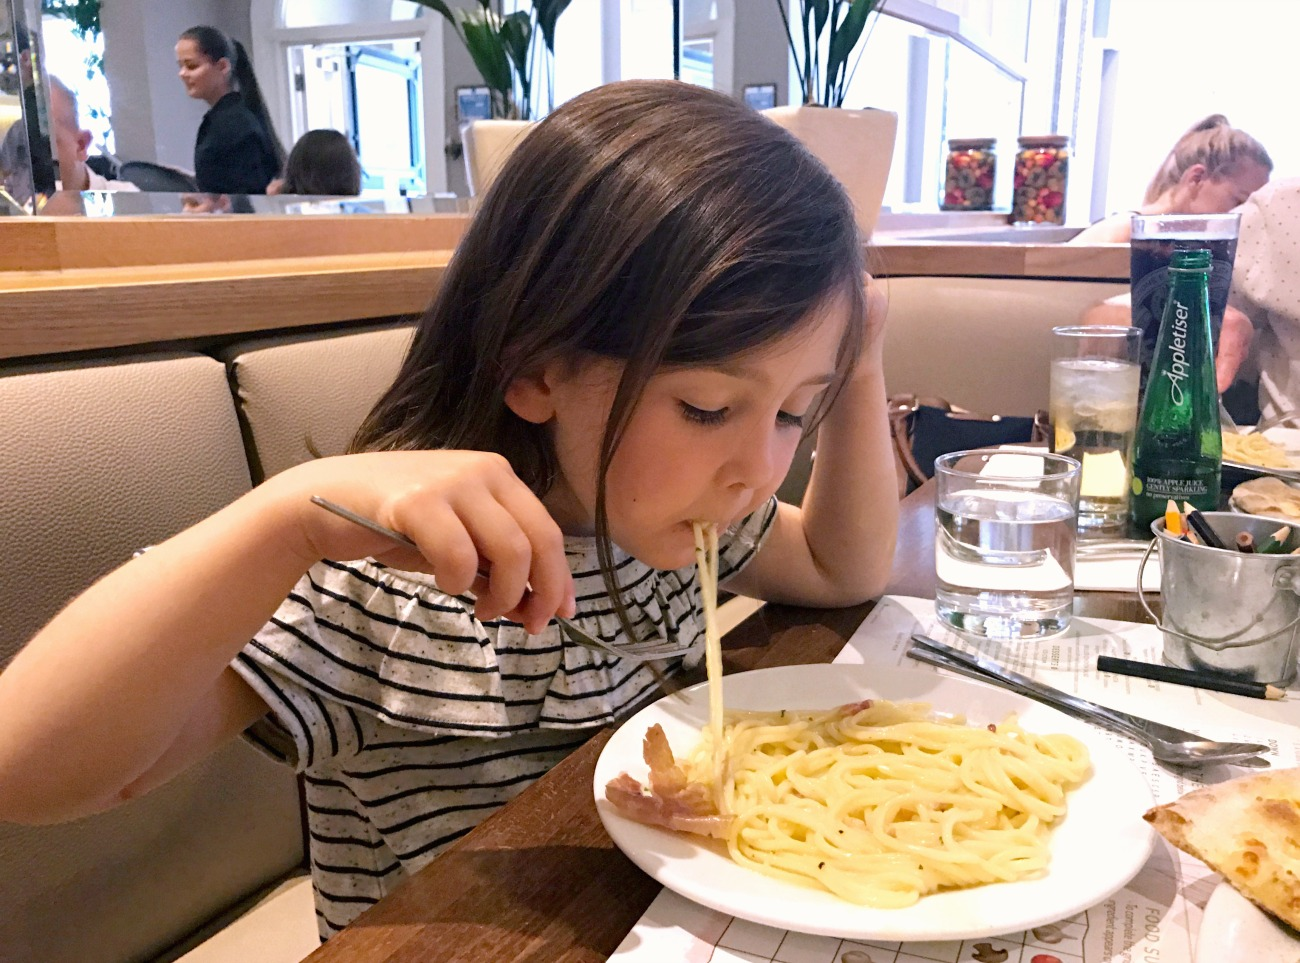 We went to check out the Prezzo La Famiglia sharing bowls that are new at Prezzo to bring the family together over a lovely meal. Find out what we thought.